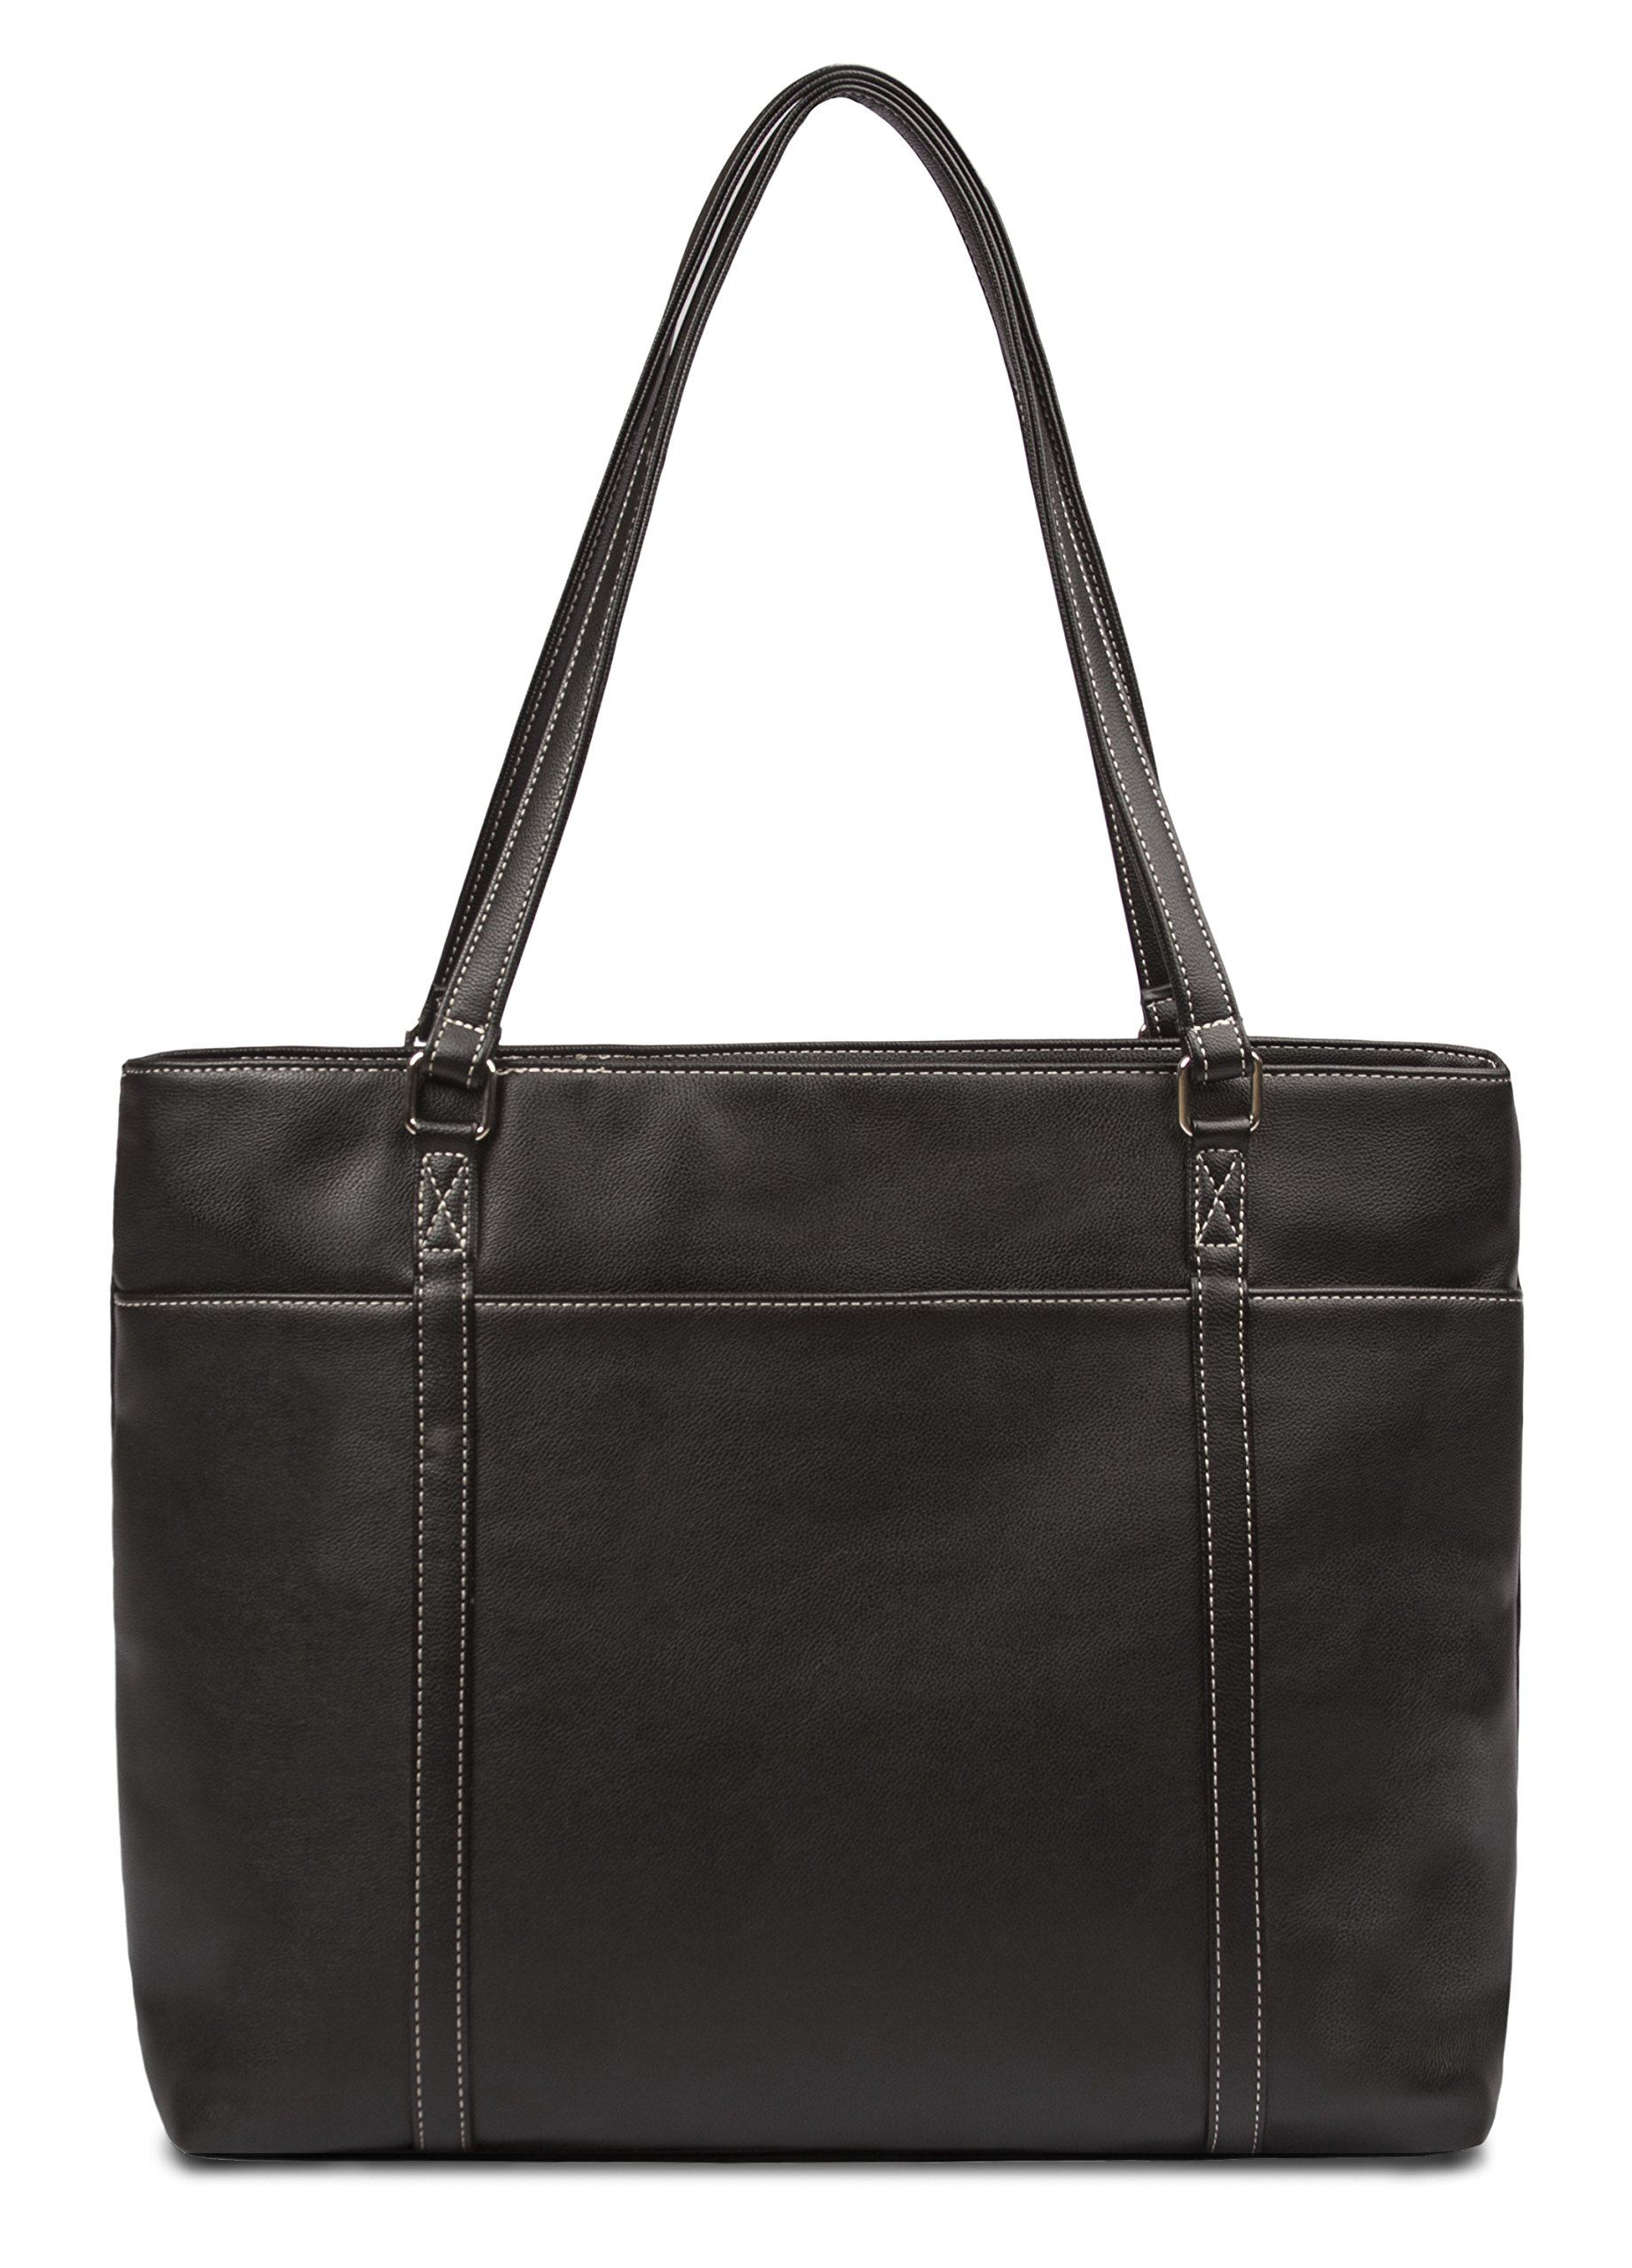 Overbrooke Classic Womens Tote Bag for Laptops  up to 15.6 Inches, Black by Overbrooke (Image #7)